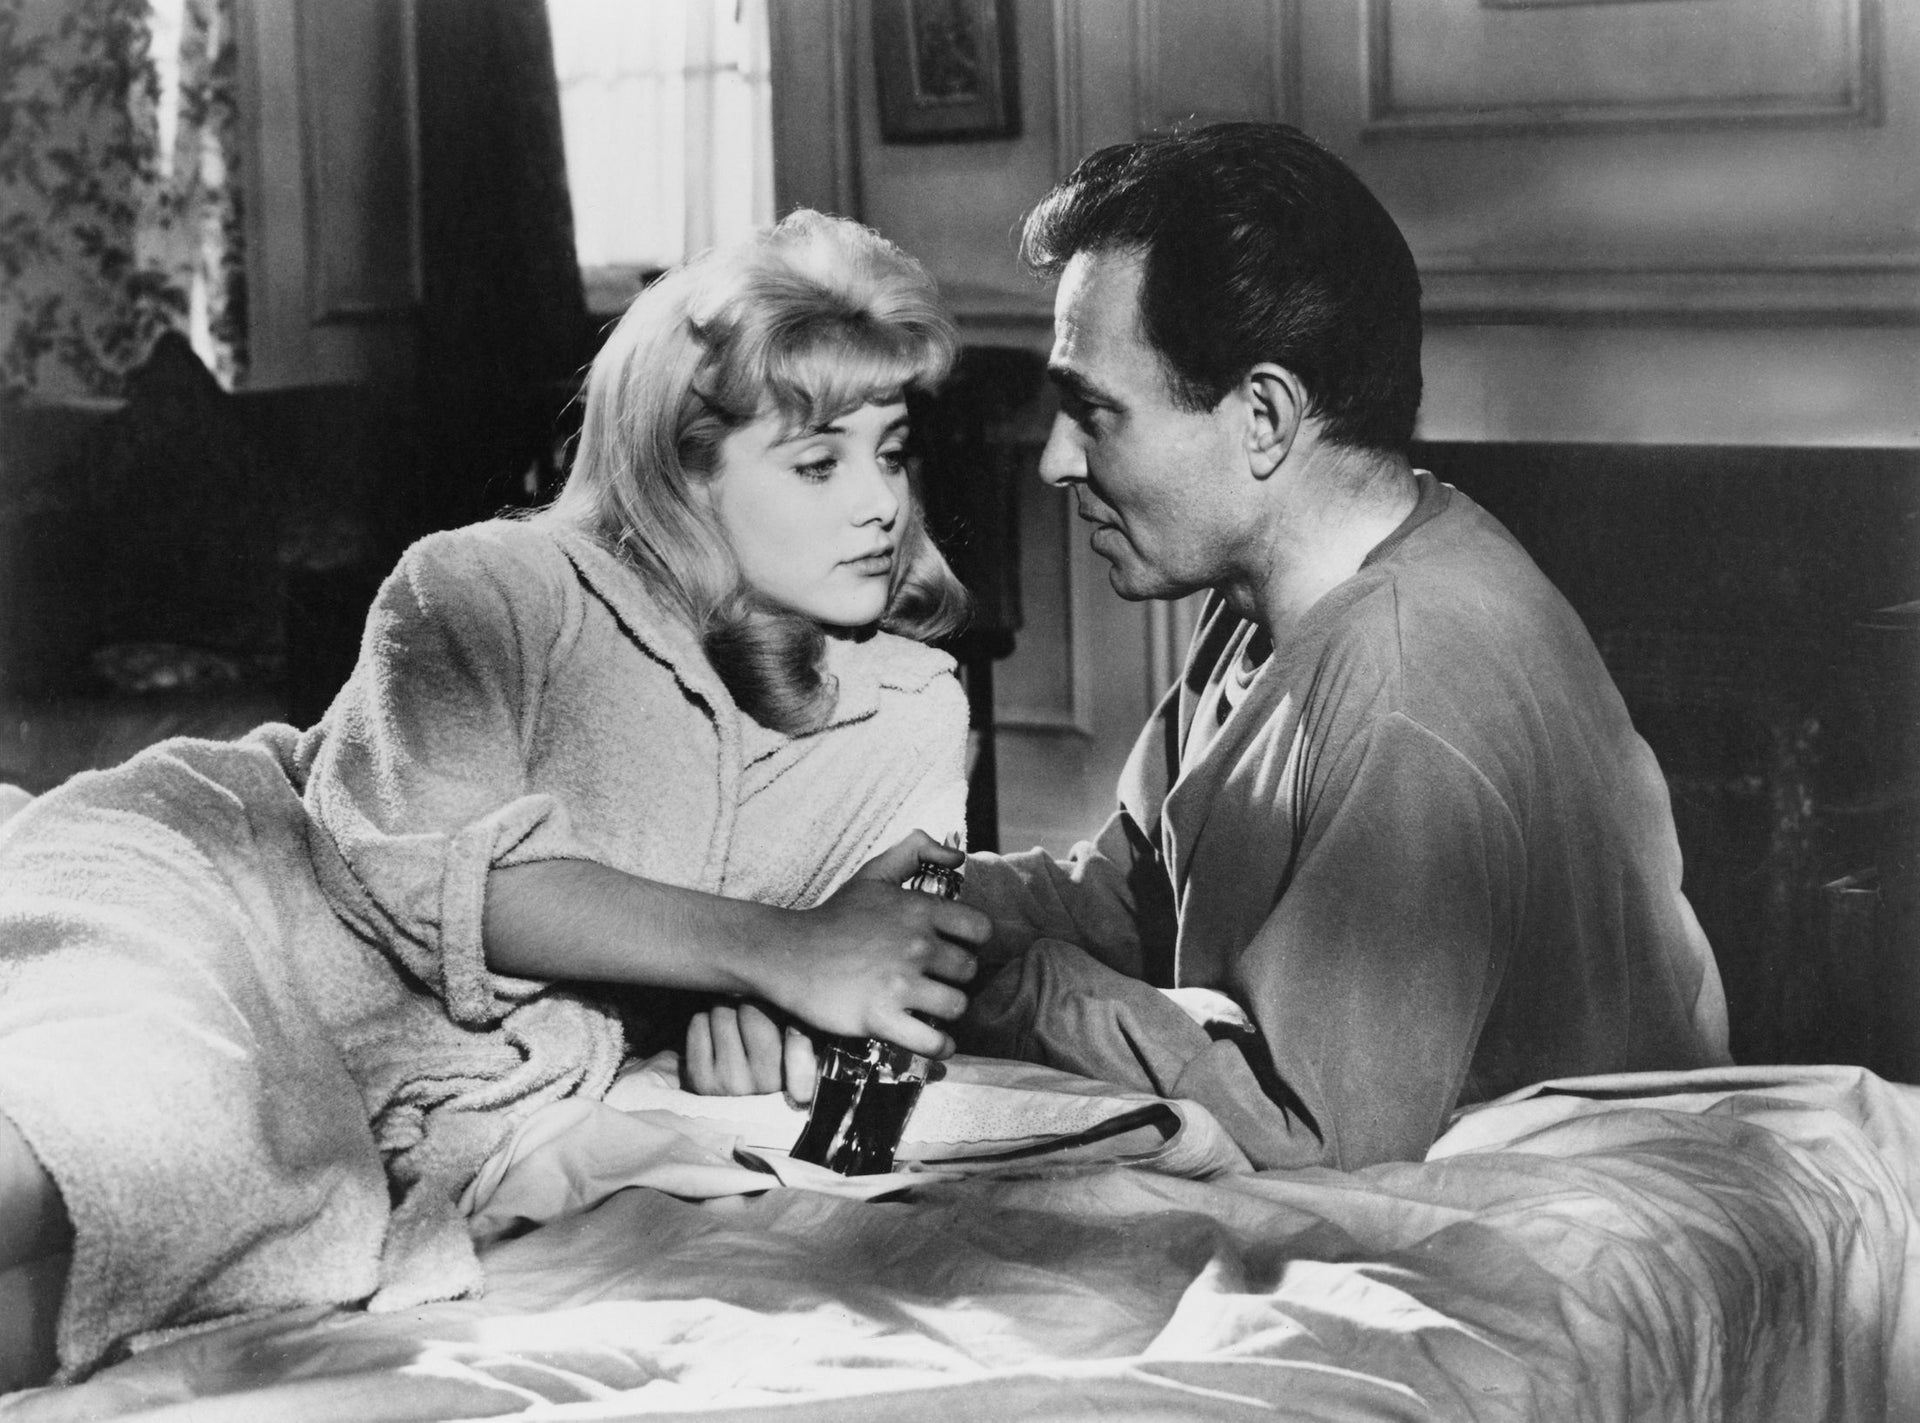 Sue Lyon as Dolores 'Lolita' Haze and James Mason as Humbert Humbert, in a scene from 'Lolitaת' directed by Stanley Kubrick, 1962.